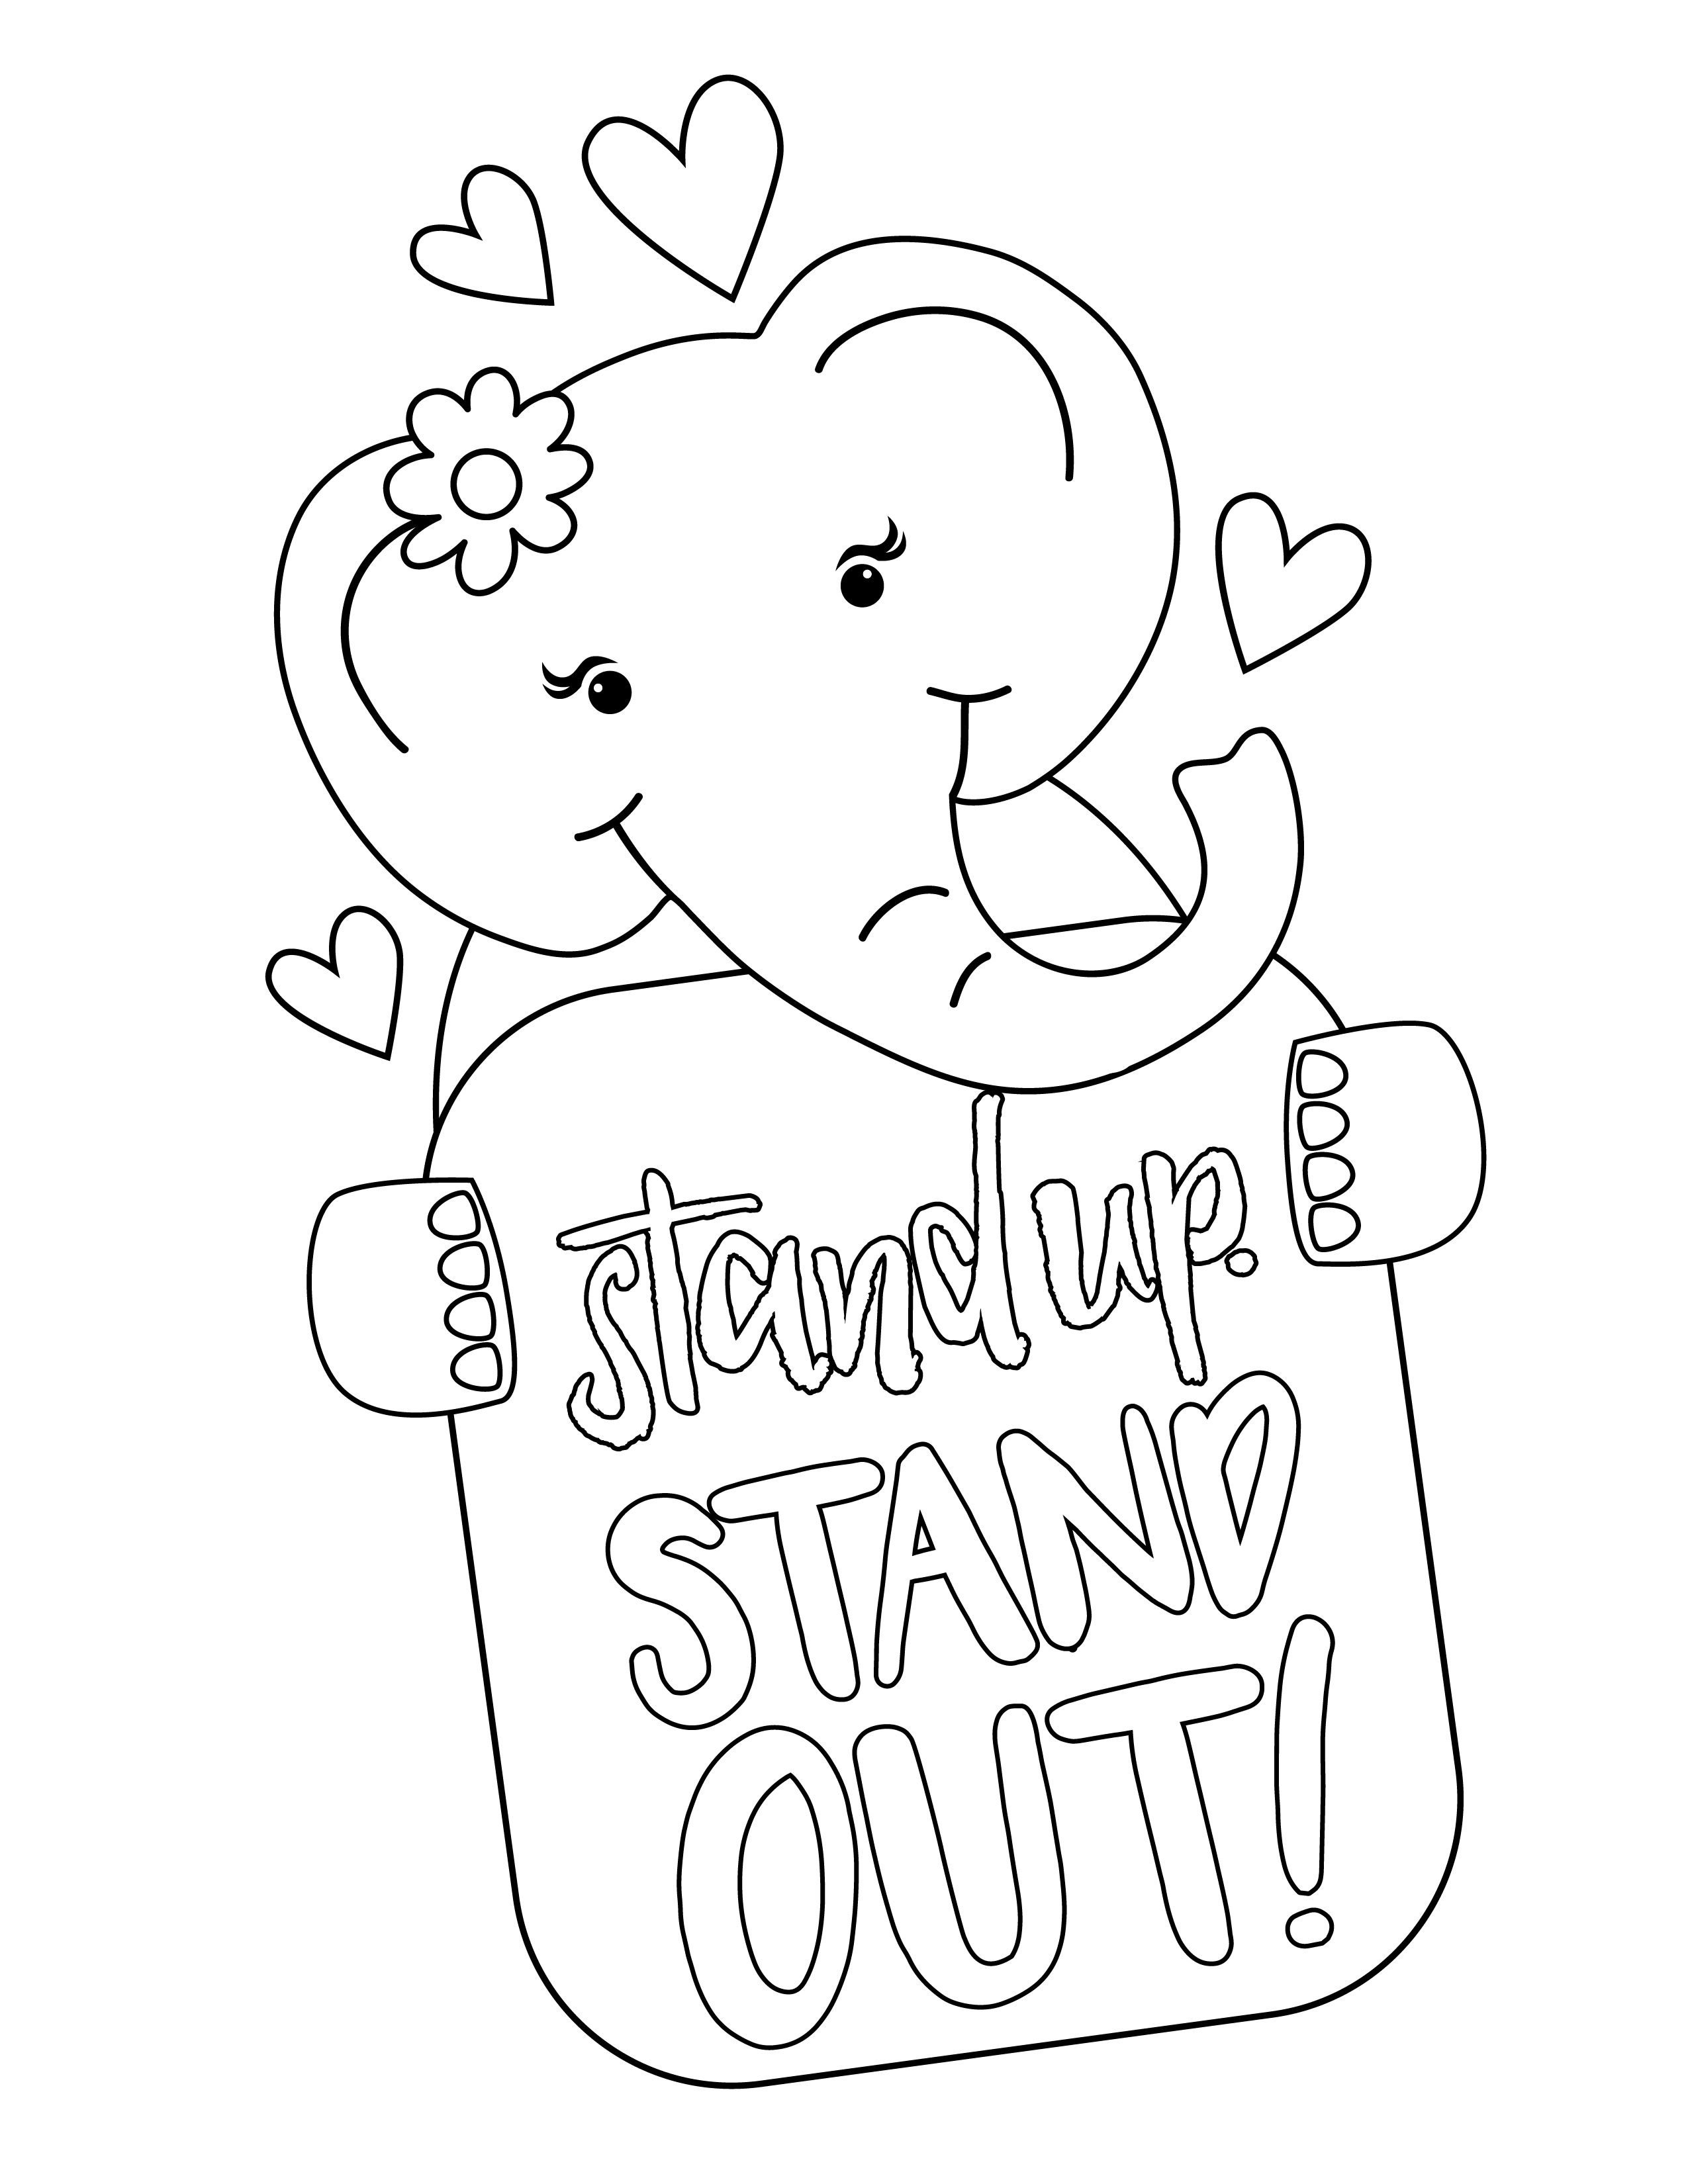 2018 girl scout cookie mascot coloring page